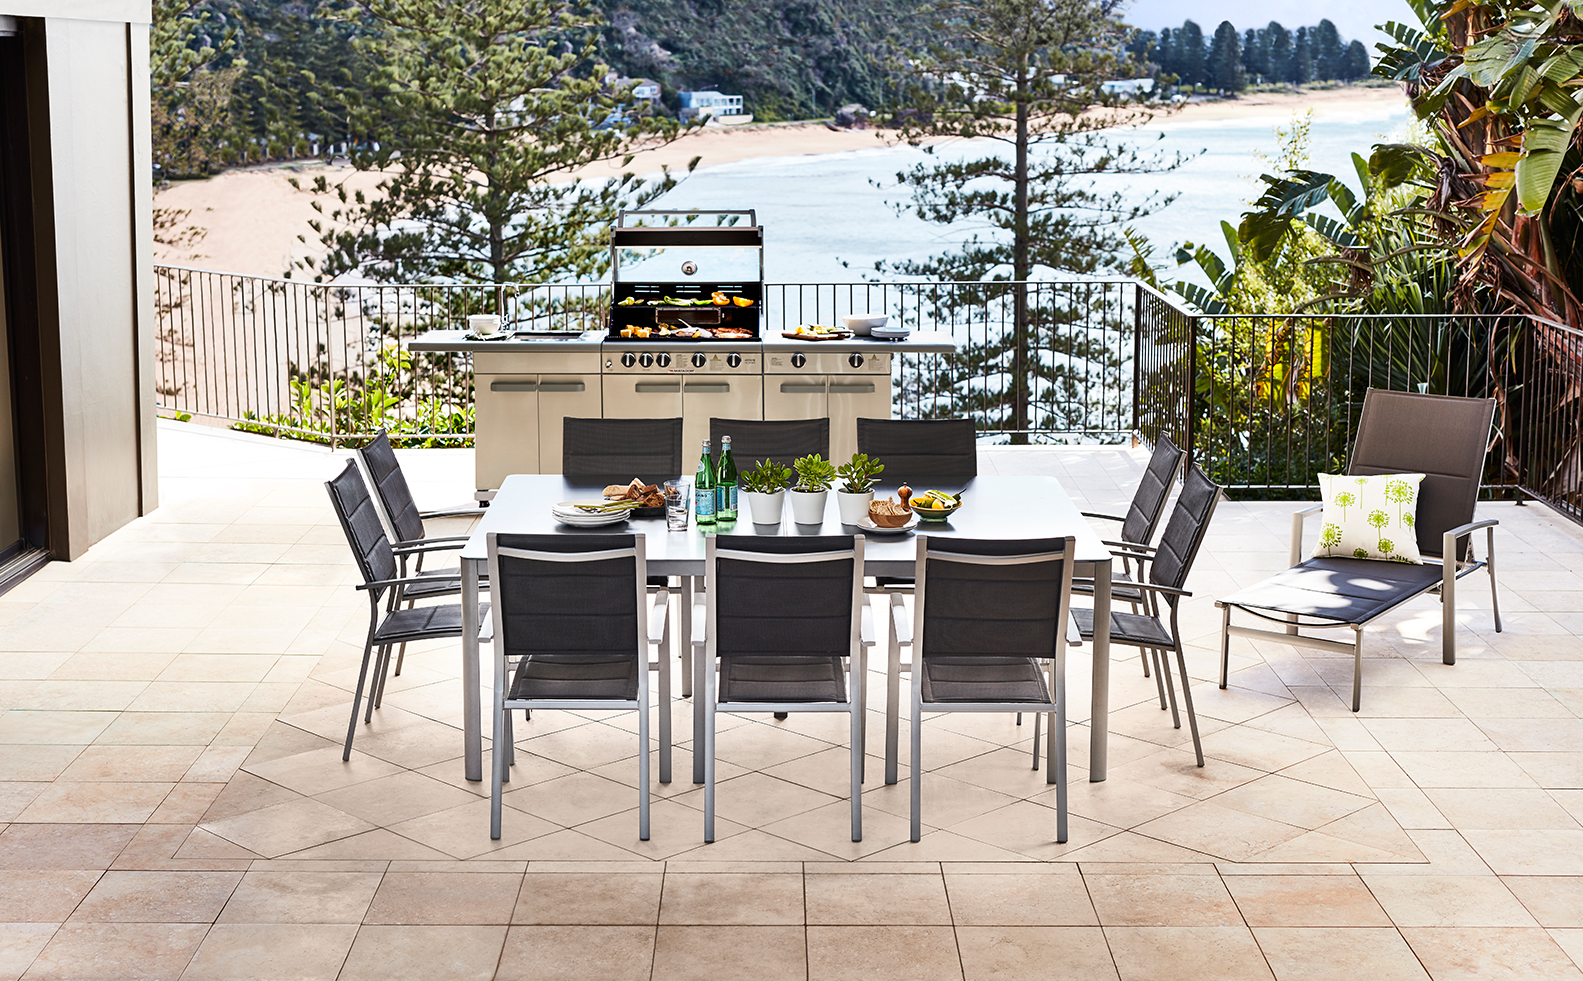 Classic charm keep it simple and refined with timeless modular outdoor furniture